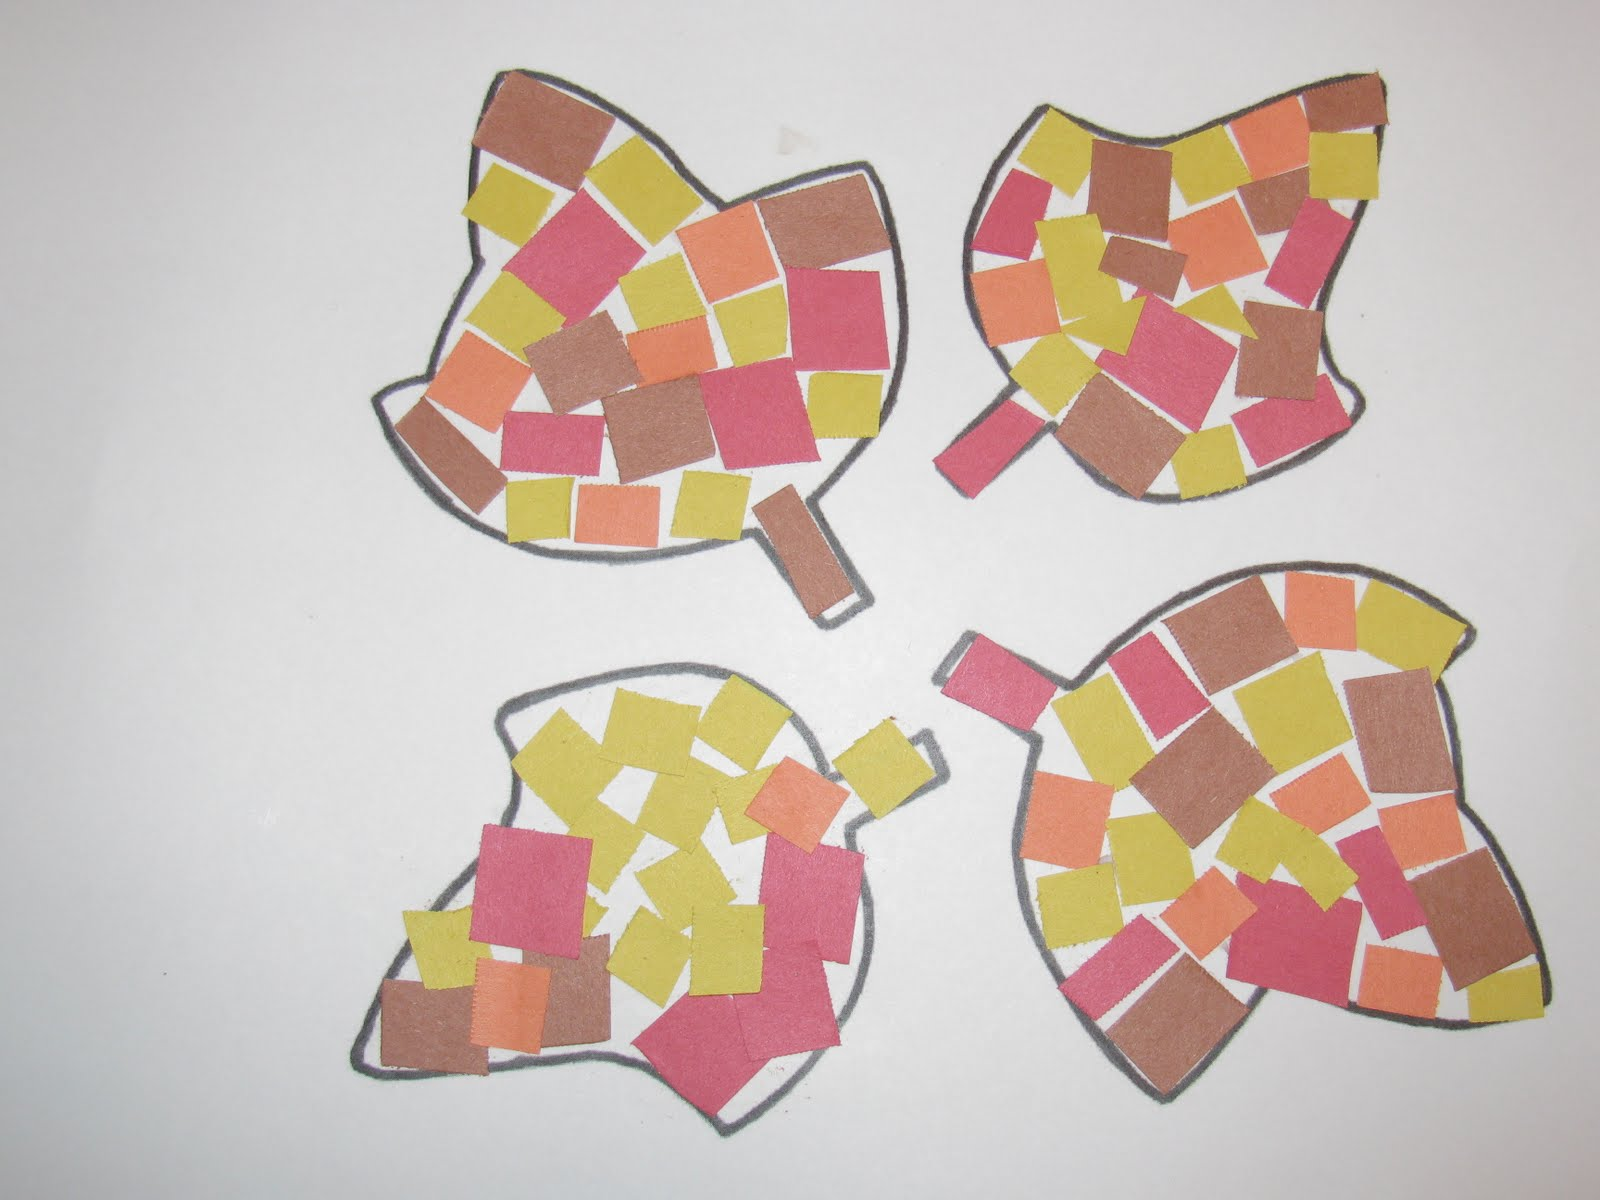 Math Spelling And Fun Stuff Too Mosaic Art Images